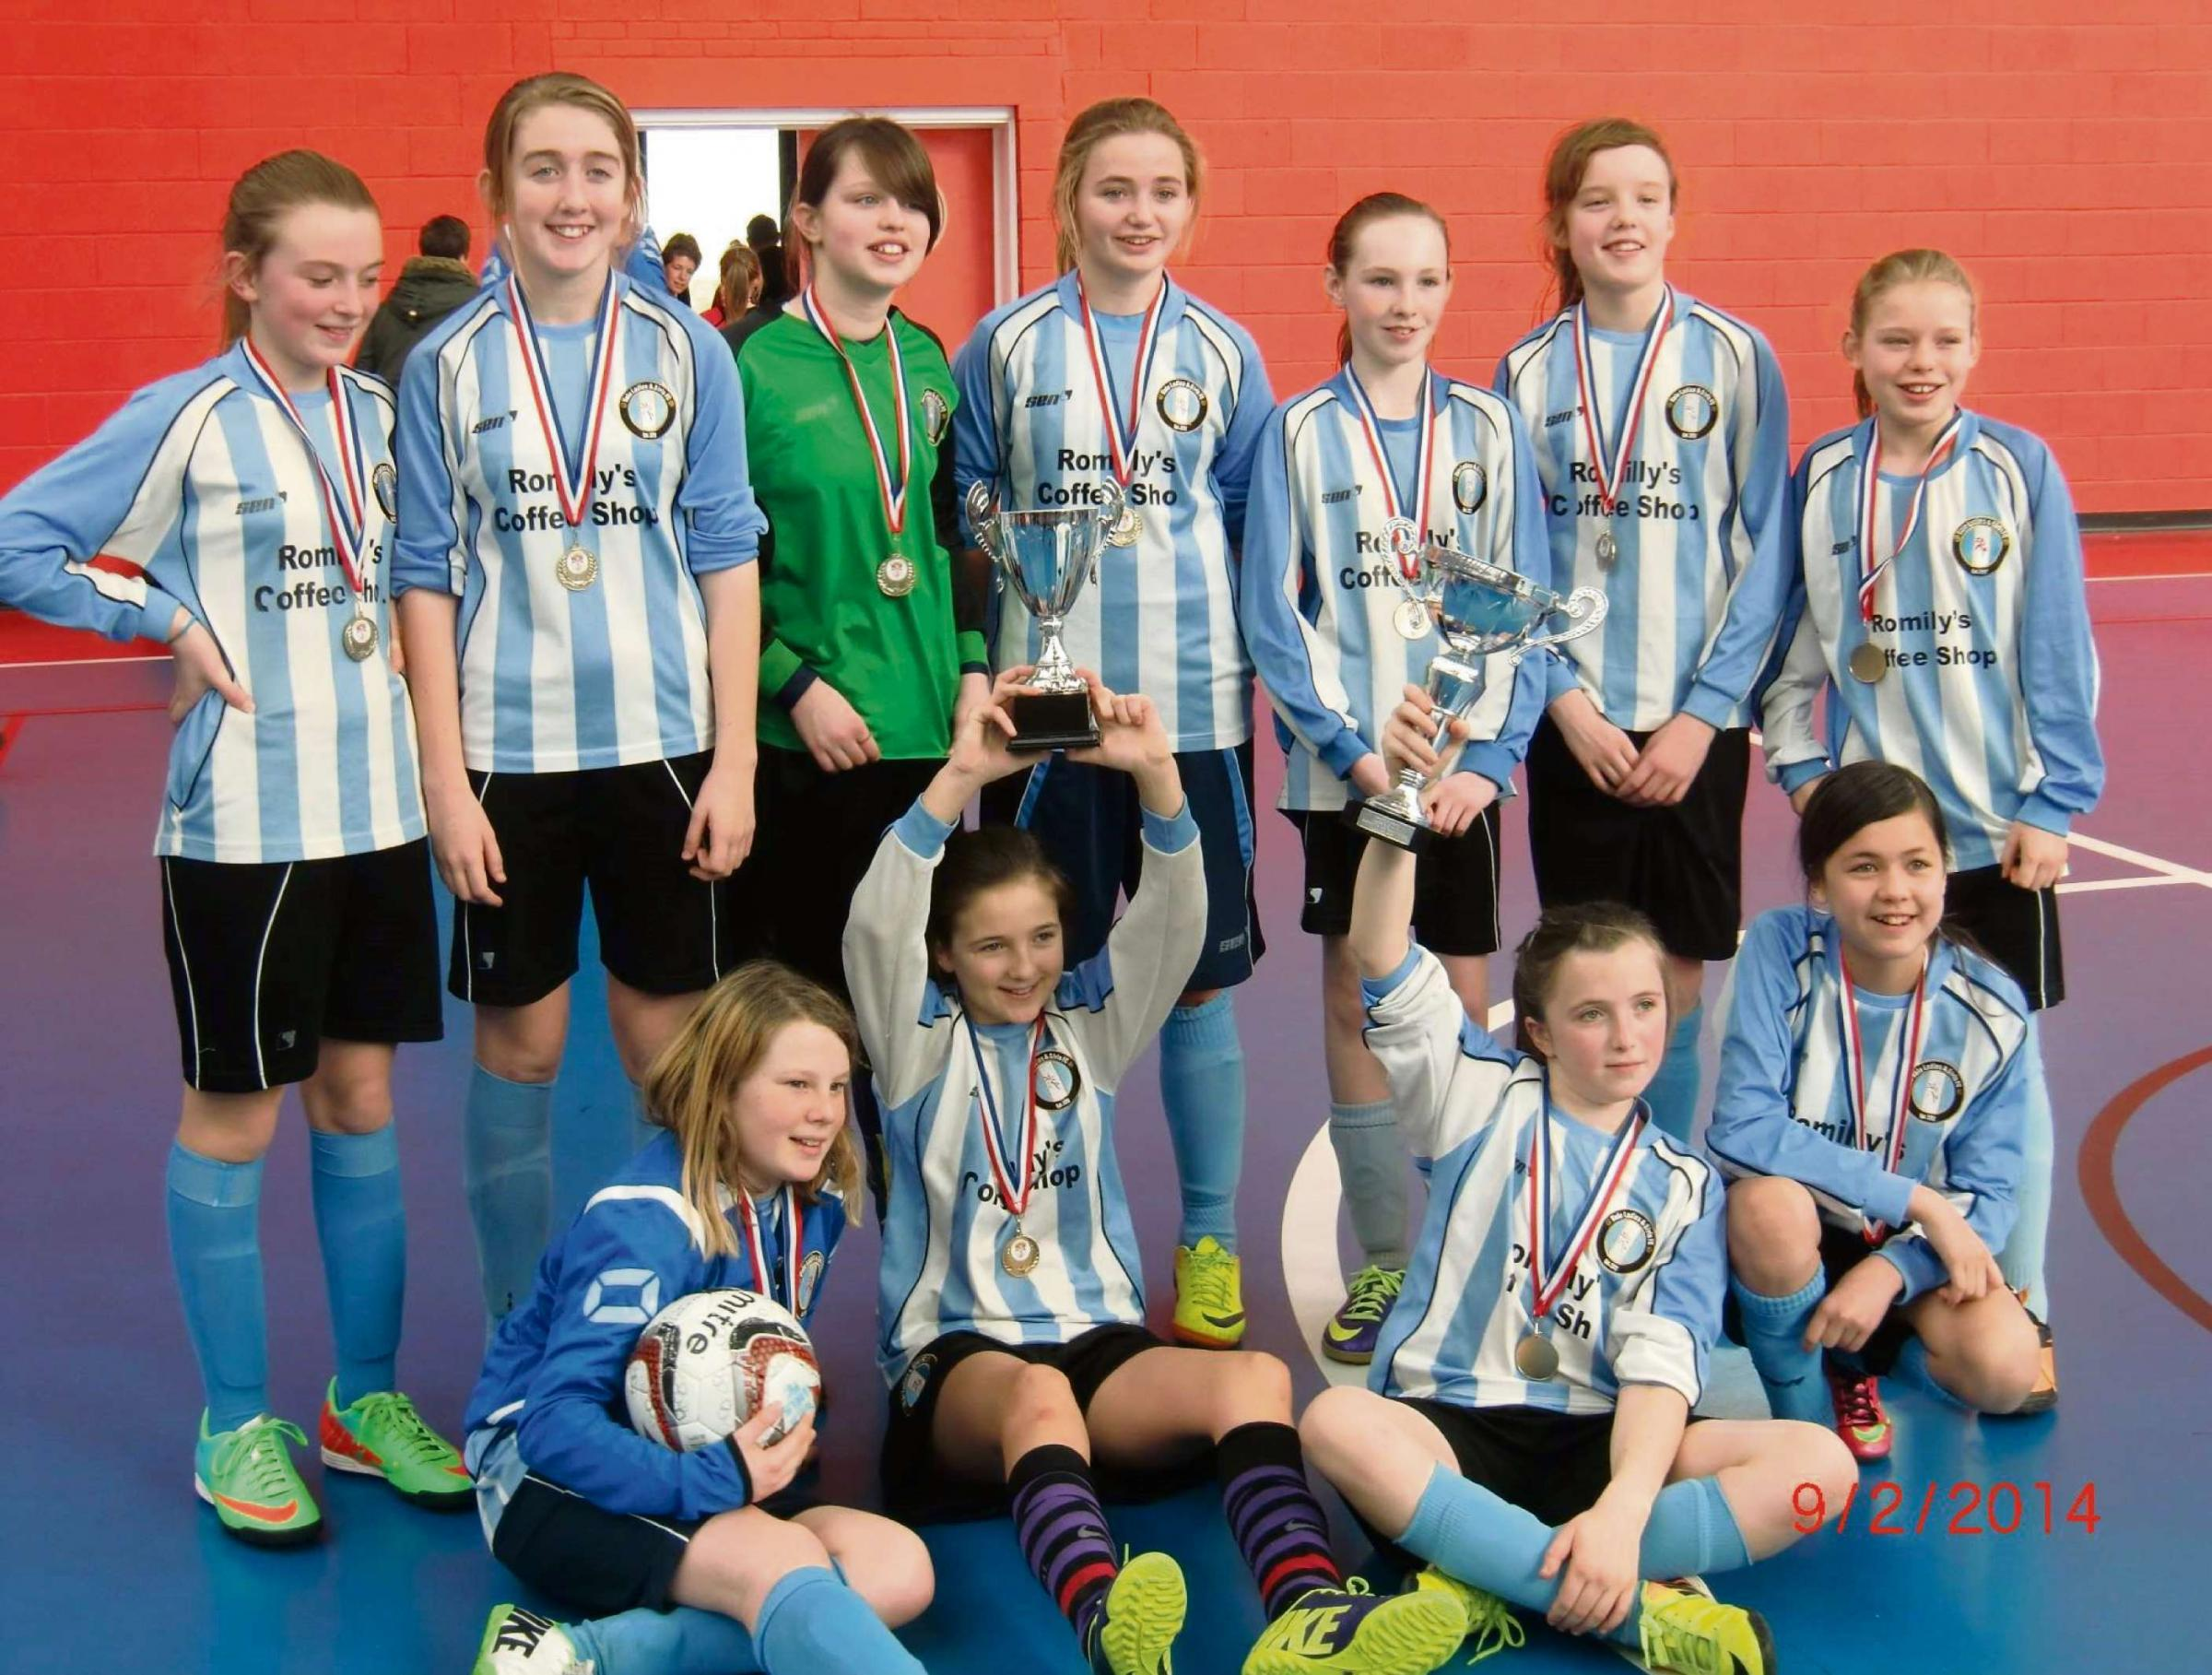 CUP WINNERS: In just their second season, an under-12 side has created a bit of history as the first Vale Ladies' & Girls' Football Club team to win a cup.